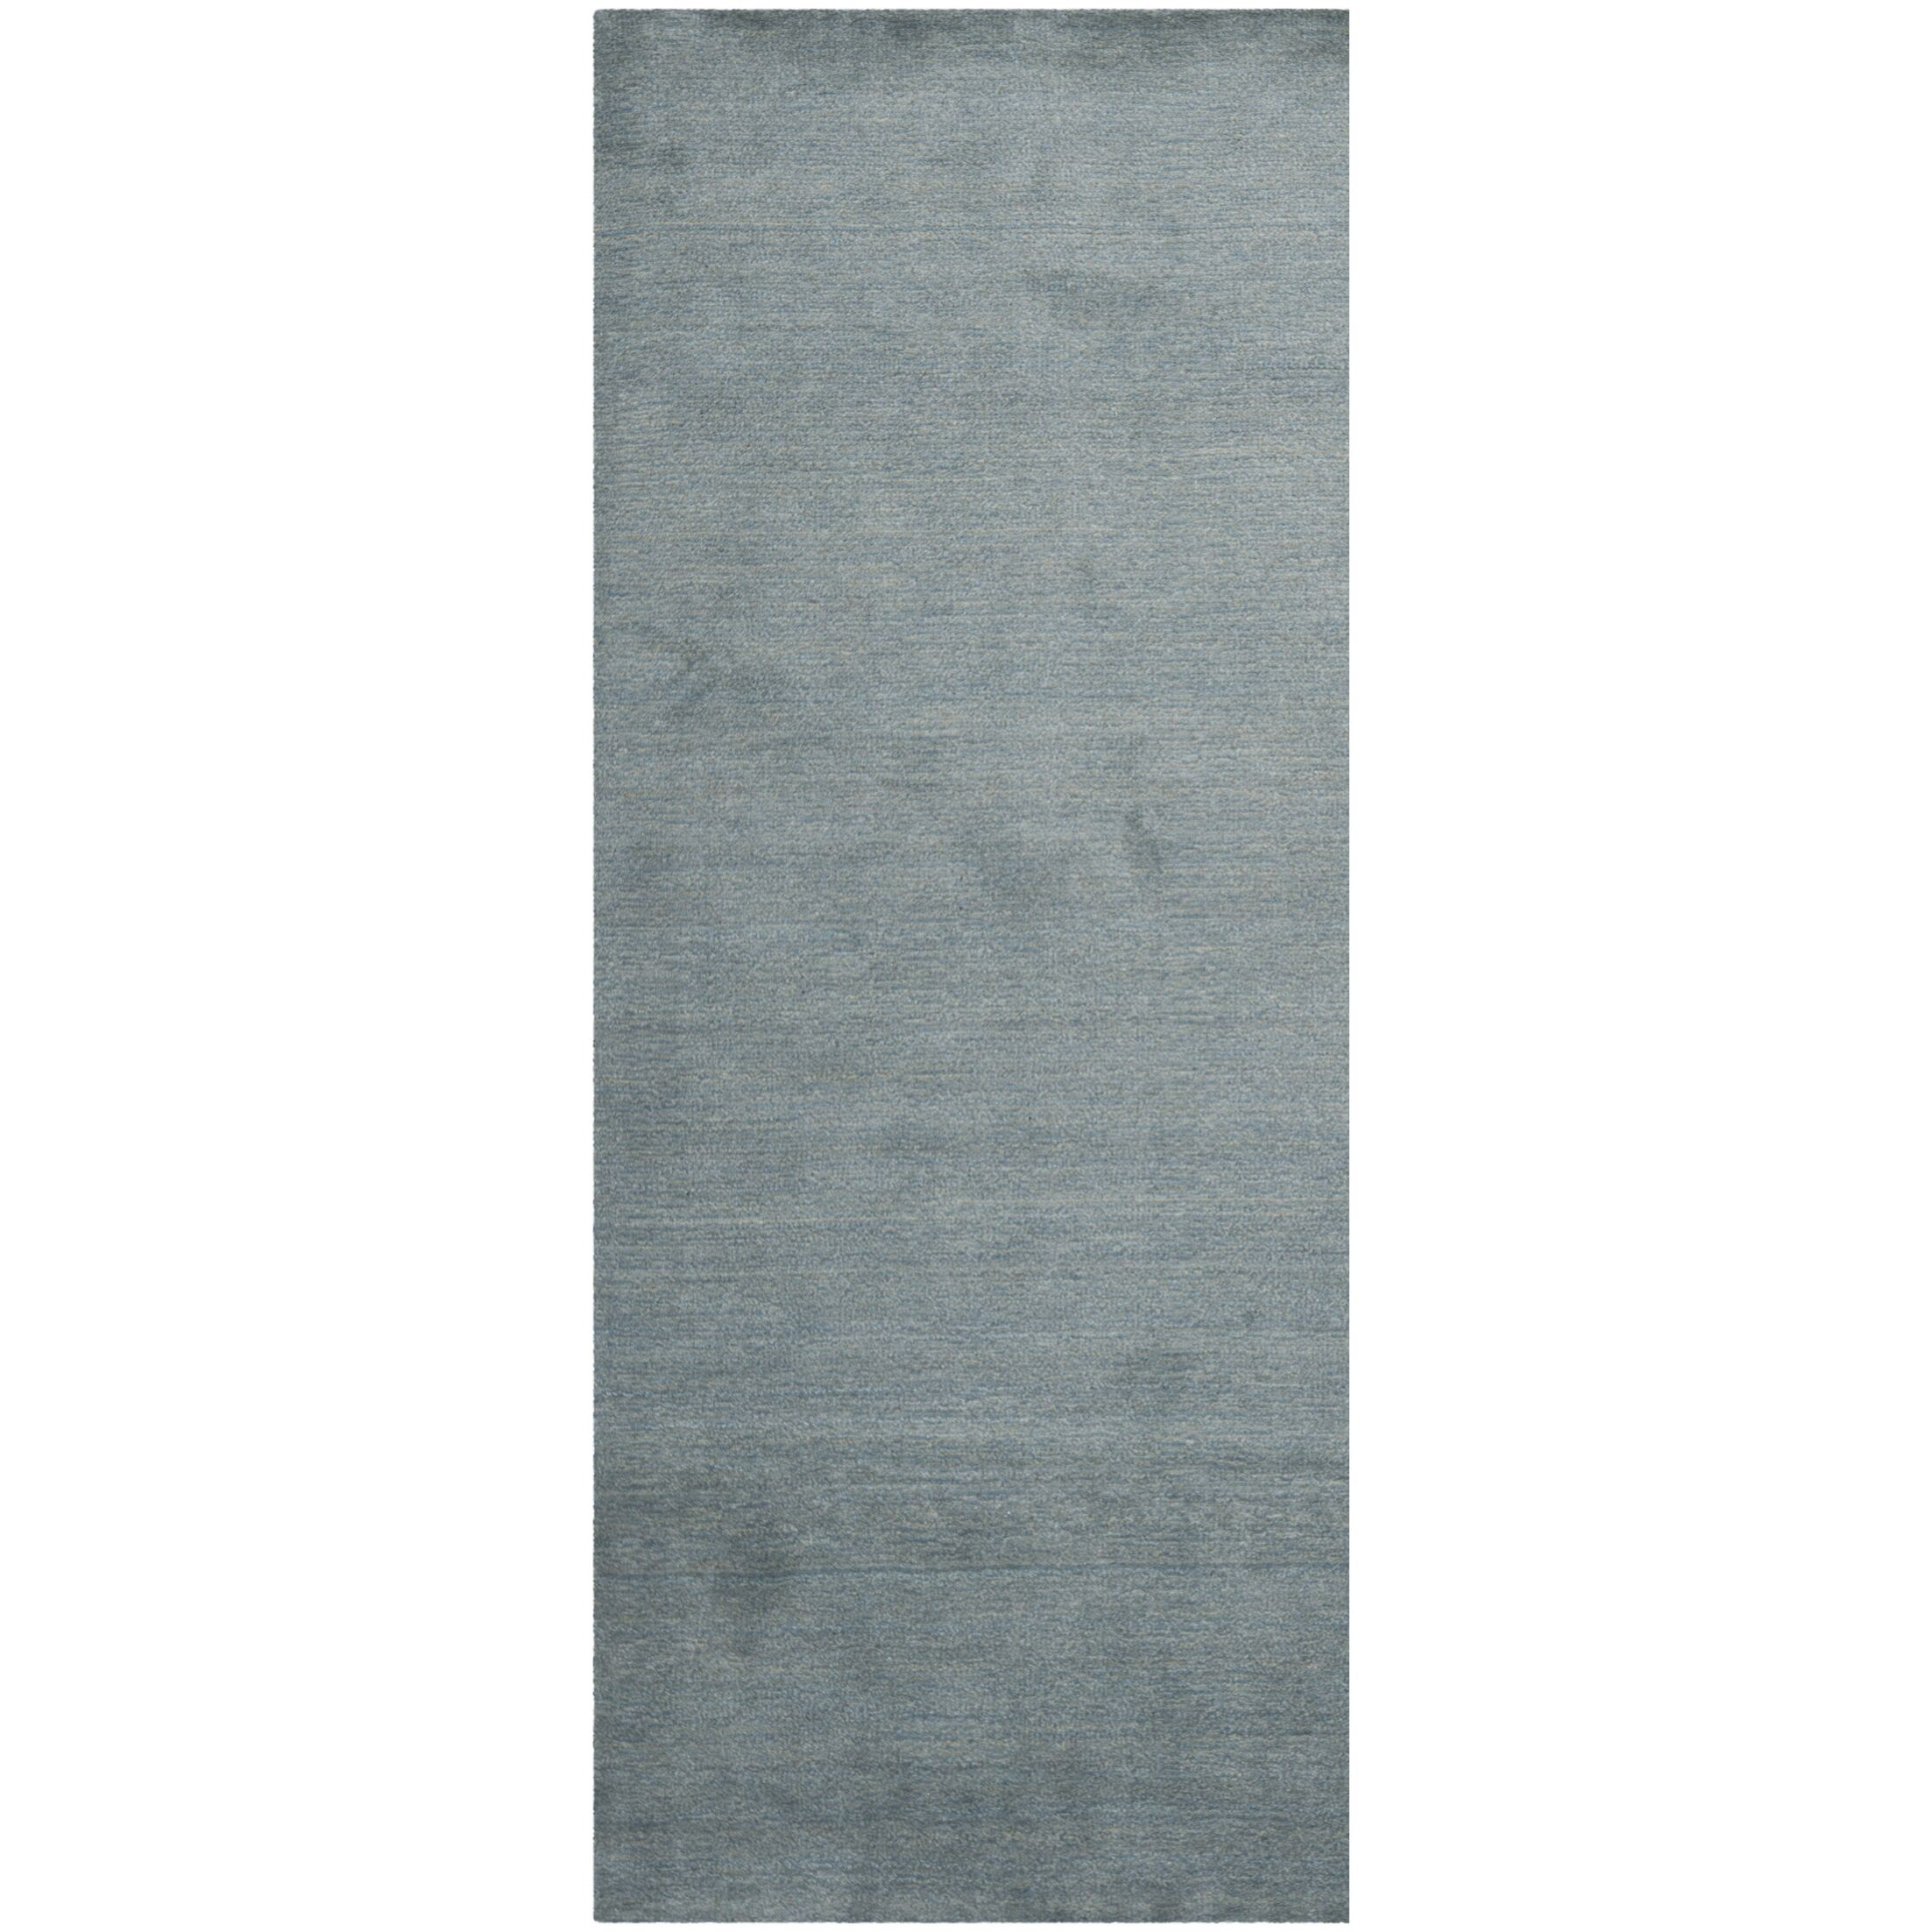 Bargo Dark Blue Ombre Area Rug Rug Size: Rectangle 6' x 9'